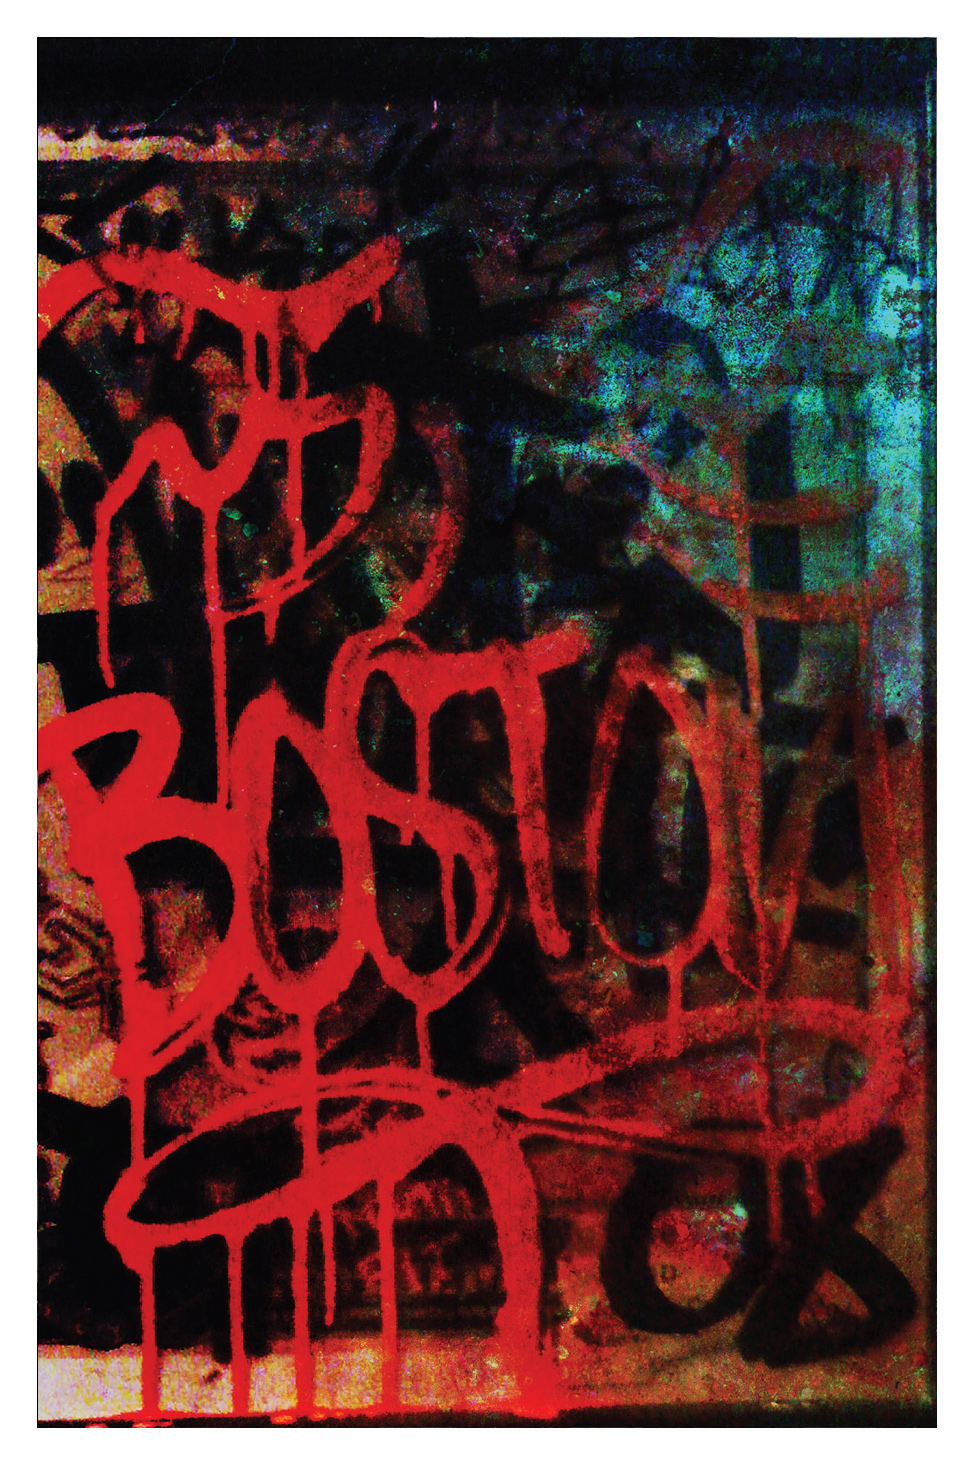 001_Wicked_Boston-01.jpg